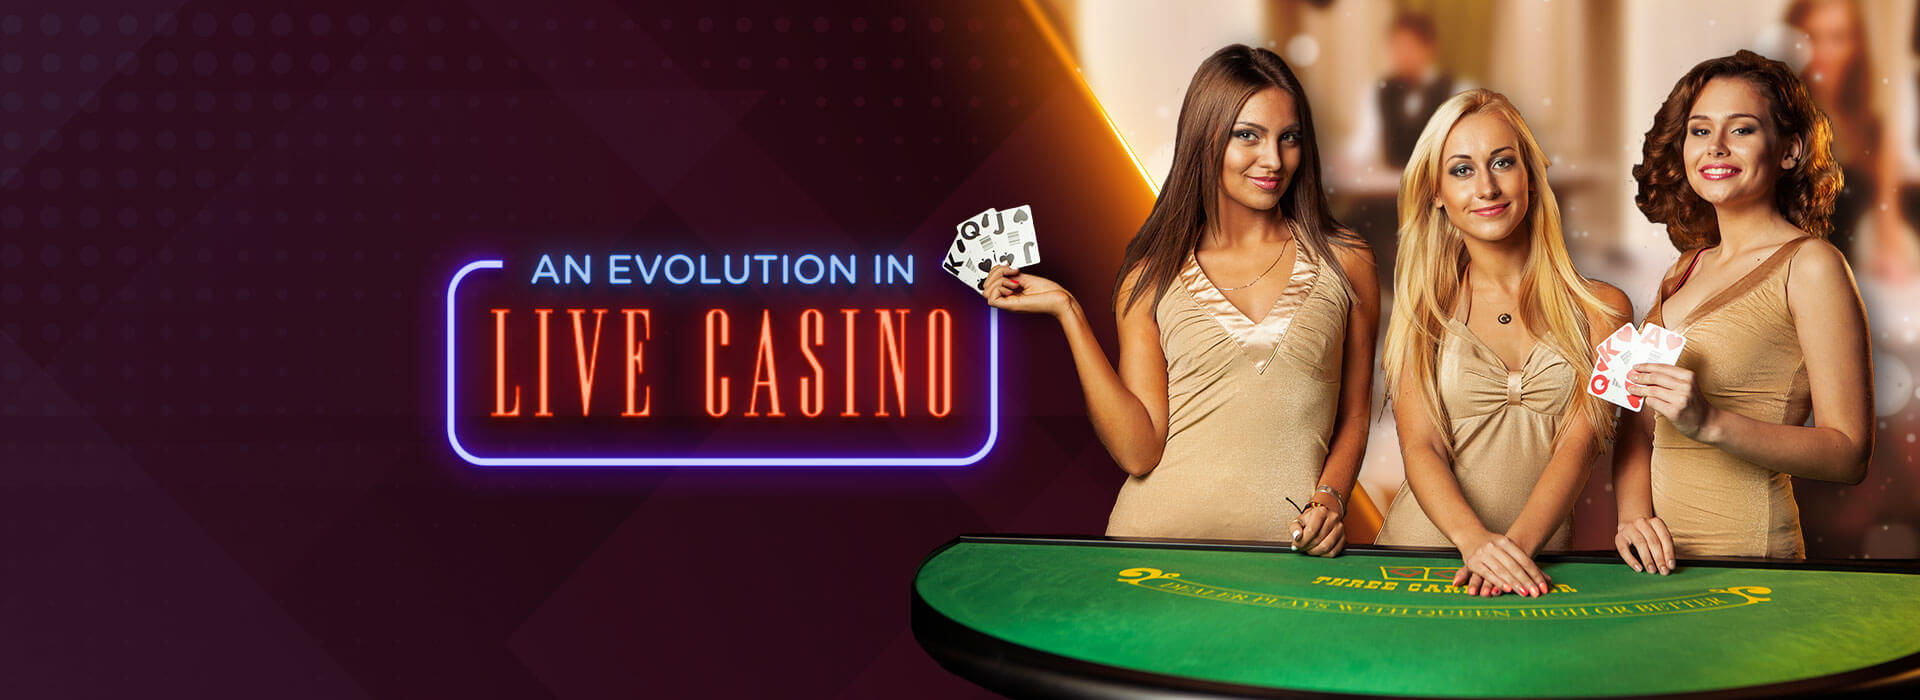 Introducing Incredible New Live Casino Tables